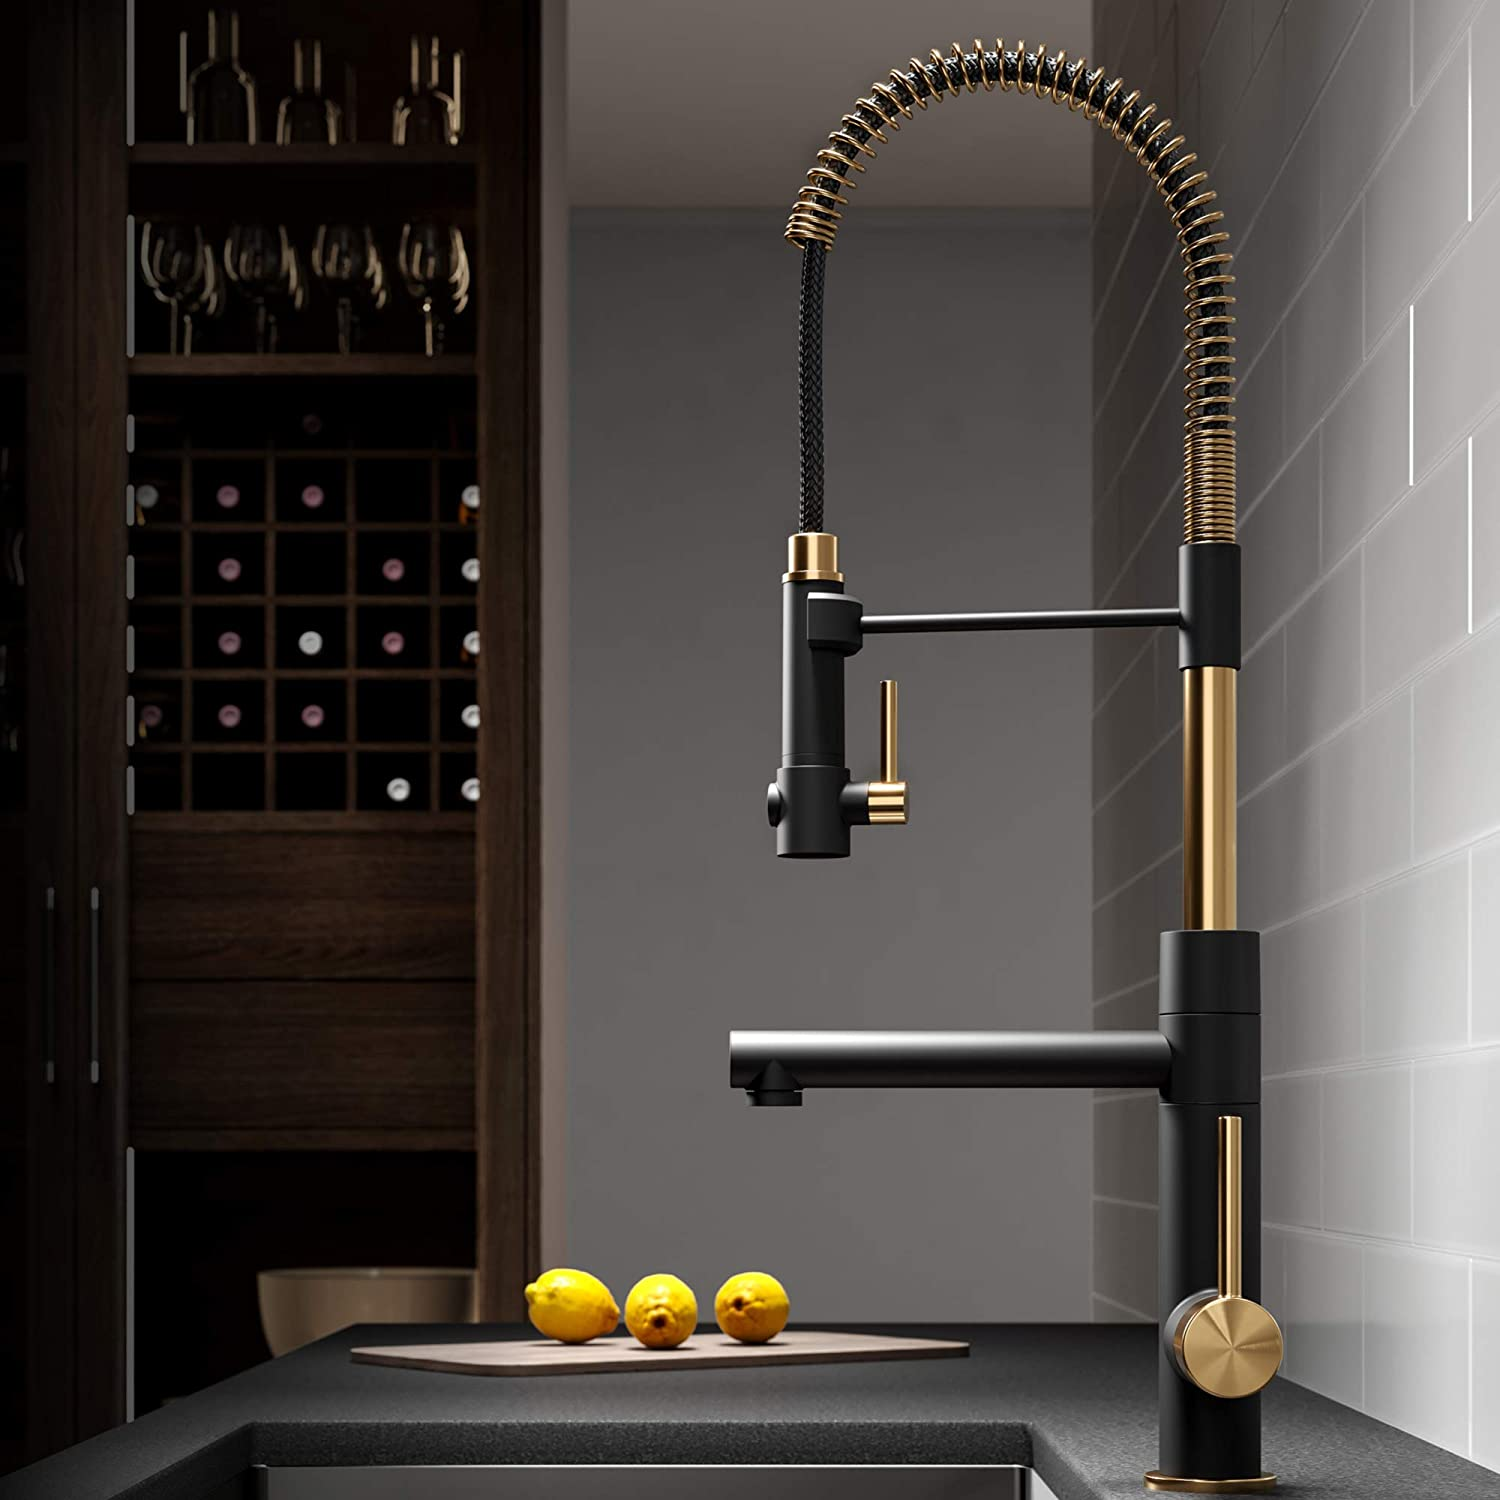 Kraus KPF-1603BGMB Artec Pro 2-Function Commercial Style Pre-Rinse Kitchen Faucet with Pull-Down Spring Spout and Pot Filler, Brushed Gold/Matte Black